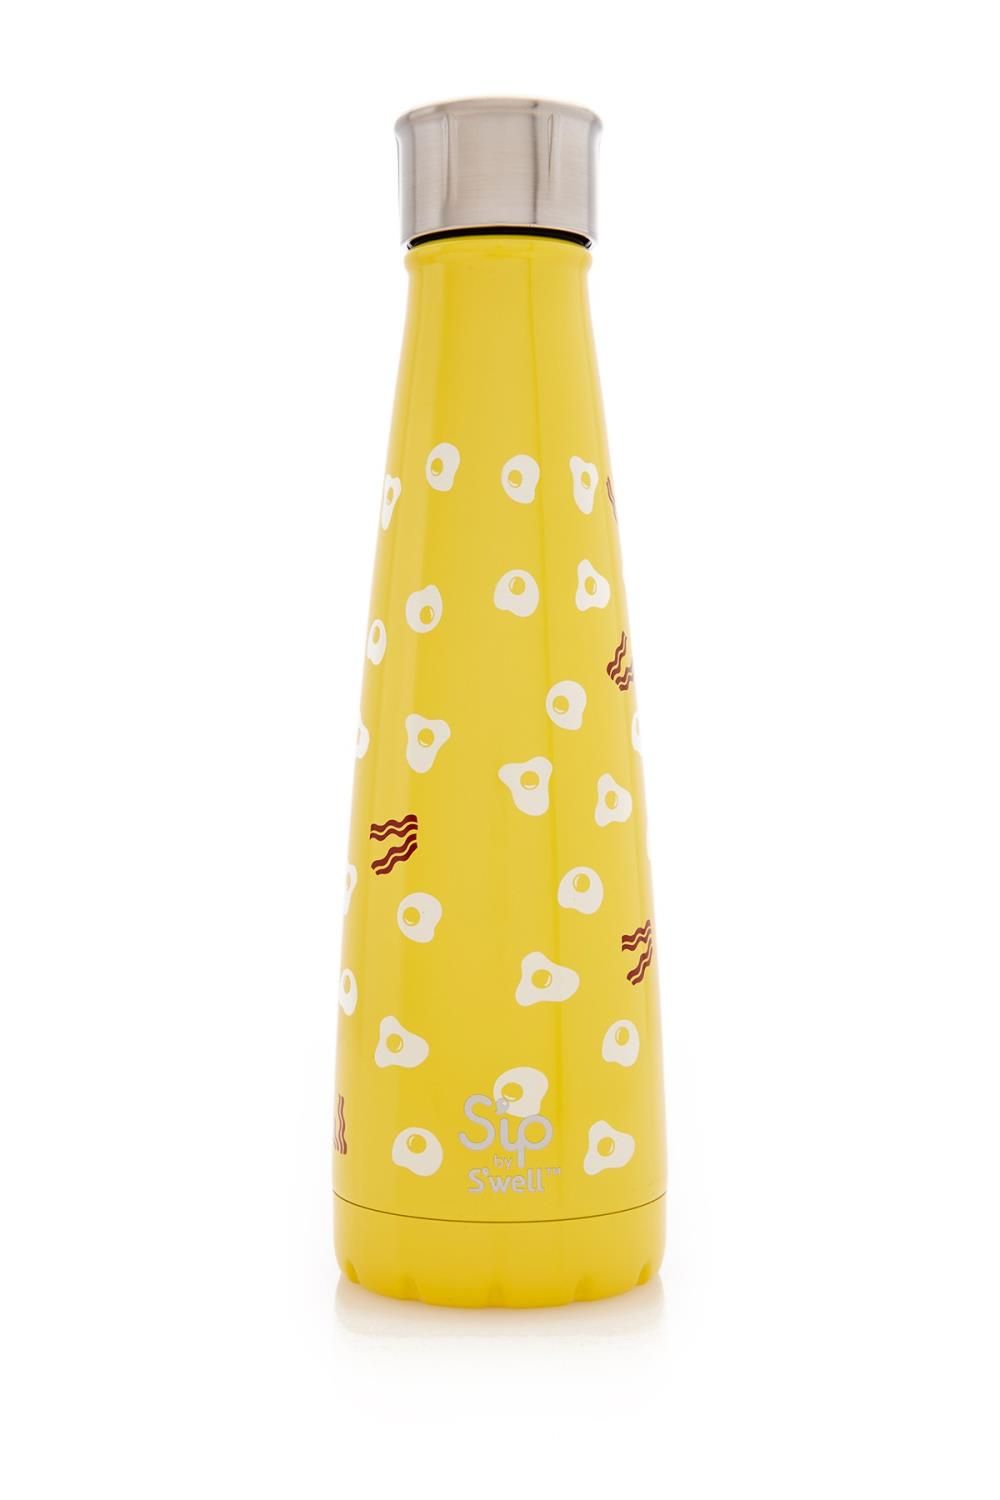 Sip by swell 450 ml Sunny side